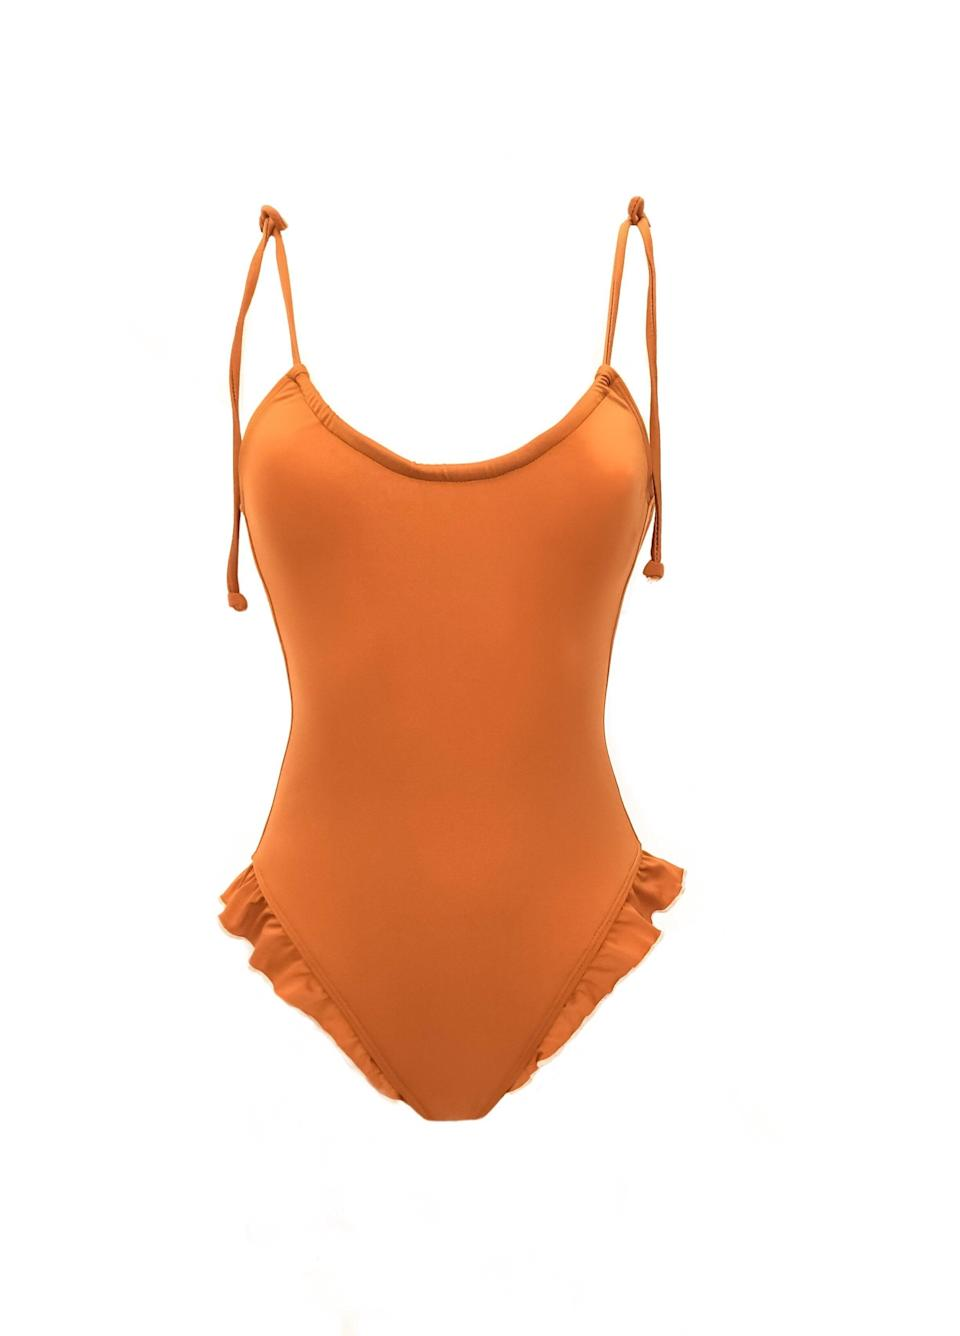 """<br> <br> <strong>Castamira</strong> Gia One-Piece, $, available at <a href=""""https://go.skimresources.com/?id=30283X879131&url=https%3A%2F%2Fwww.castamira.com%2Fcollections%2Fcollection-1%2Fproducts%2Fgia"""" rel=""""nofollow noopener"""" target=""""_blank"""" data-ylk=""""slk:Castamira"""" class=""""link rapid-noclick-resp"""">Castamira</a>"""